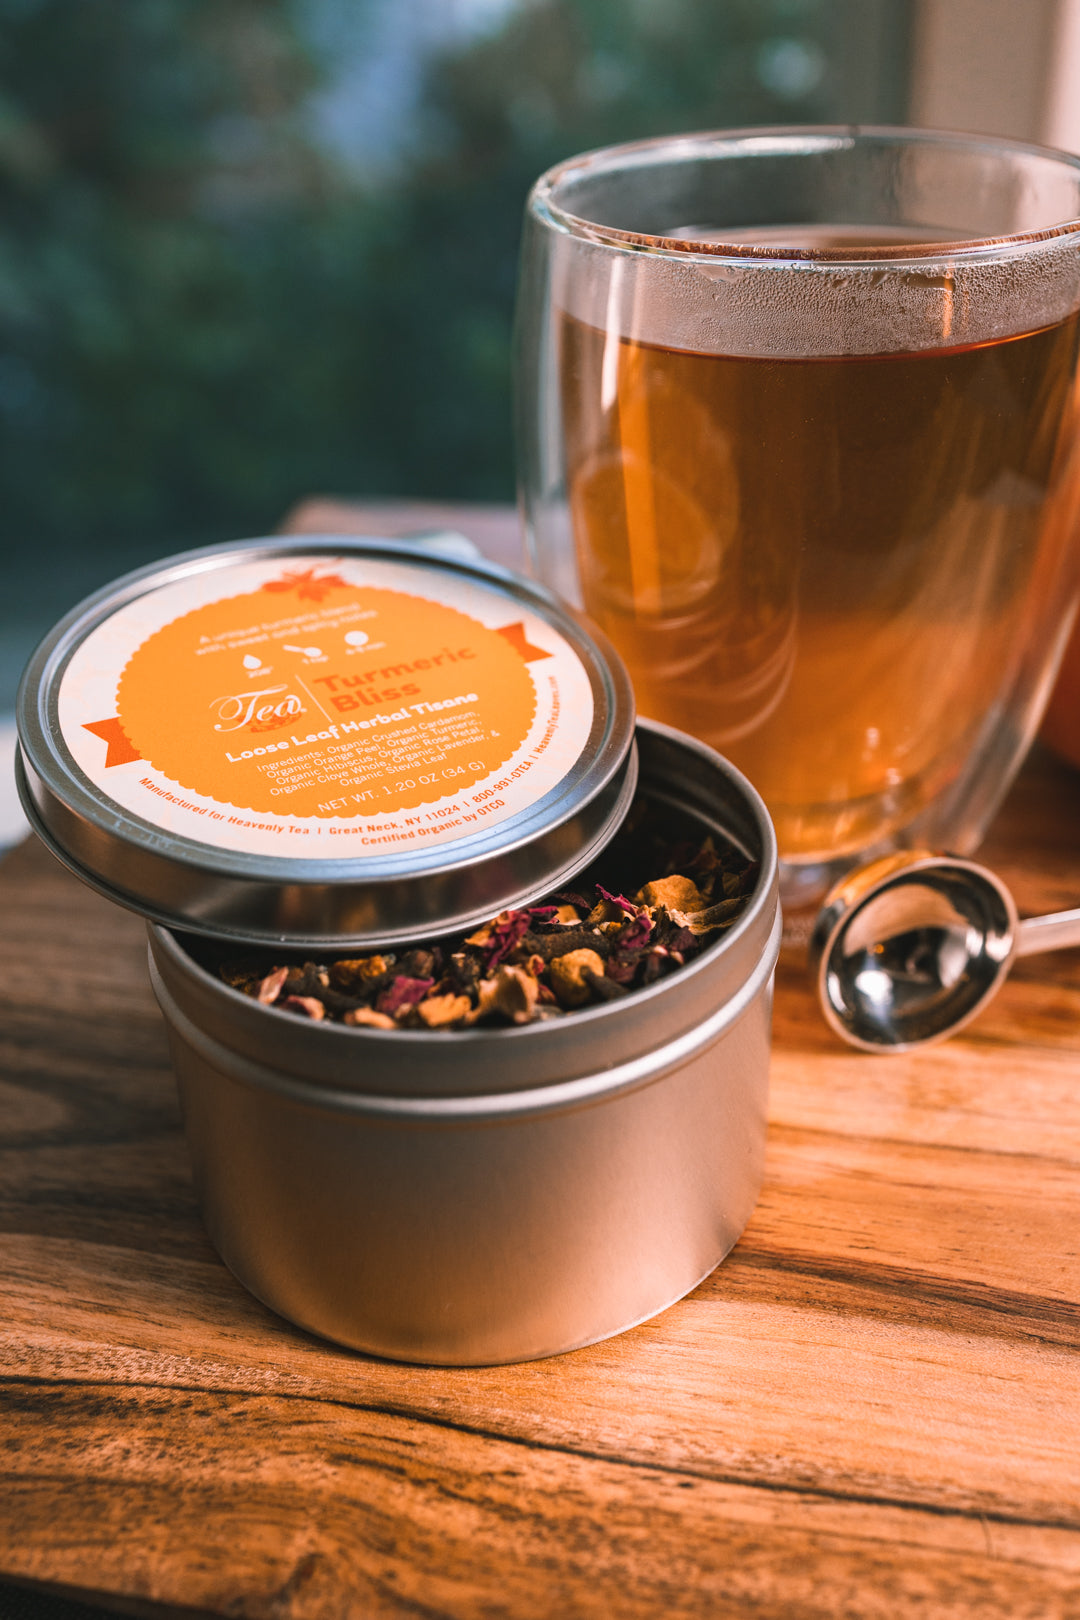 Fall Teas - Autumn Tea - Premium Loose Leaf Teas & Herbal Tisanes - Teas to Cozy Up - Teas to Warm You Up - Heavenly Tea Leaves